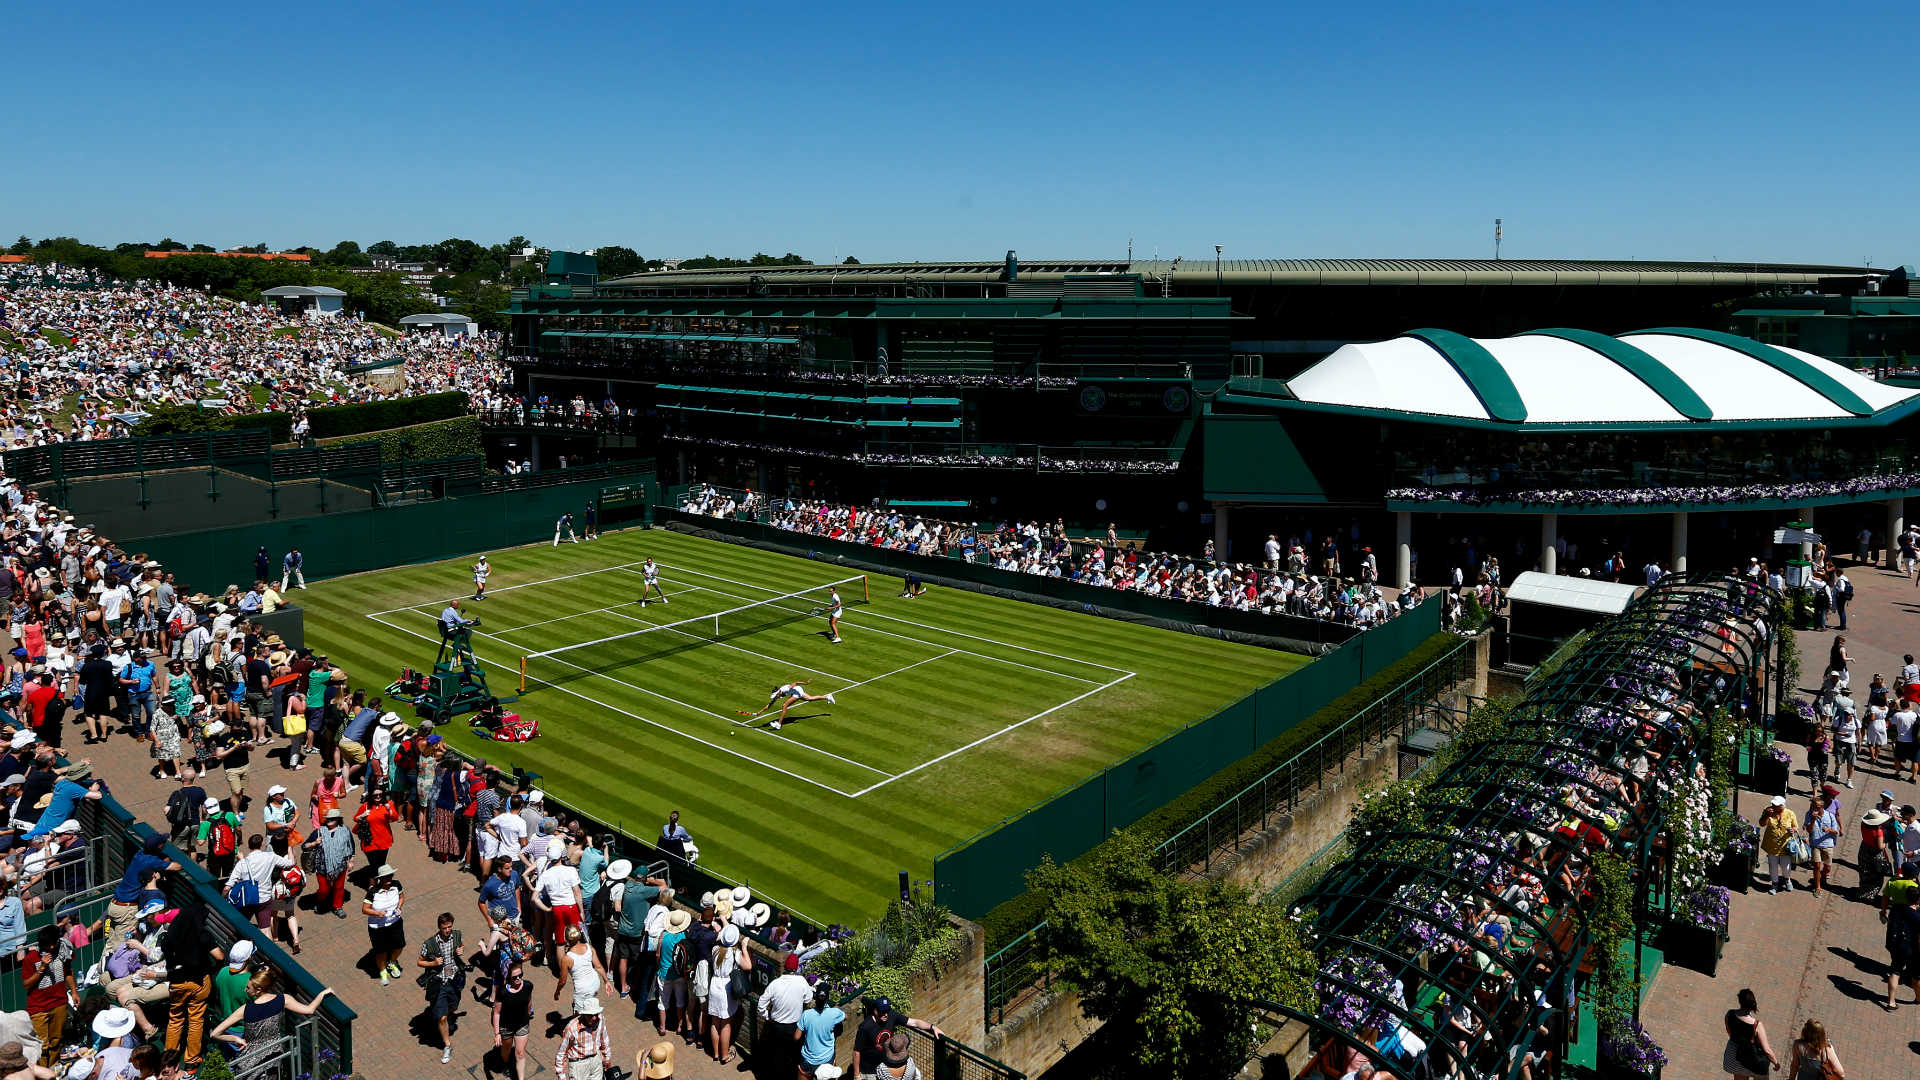 Wimbledon's No. 1 court